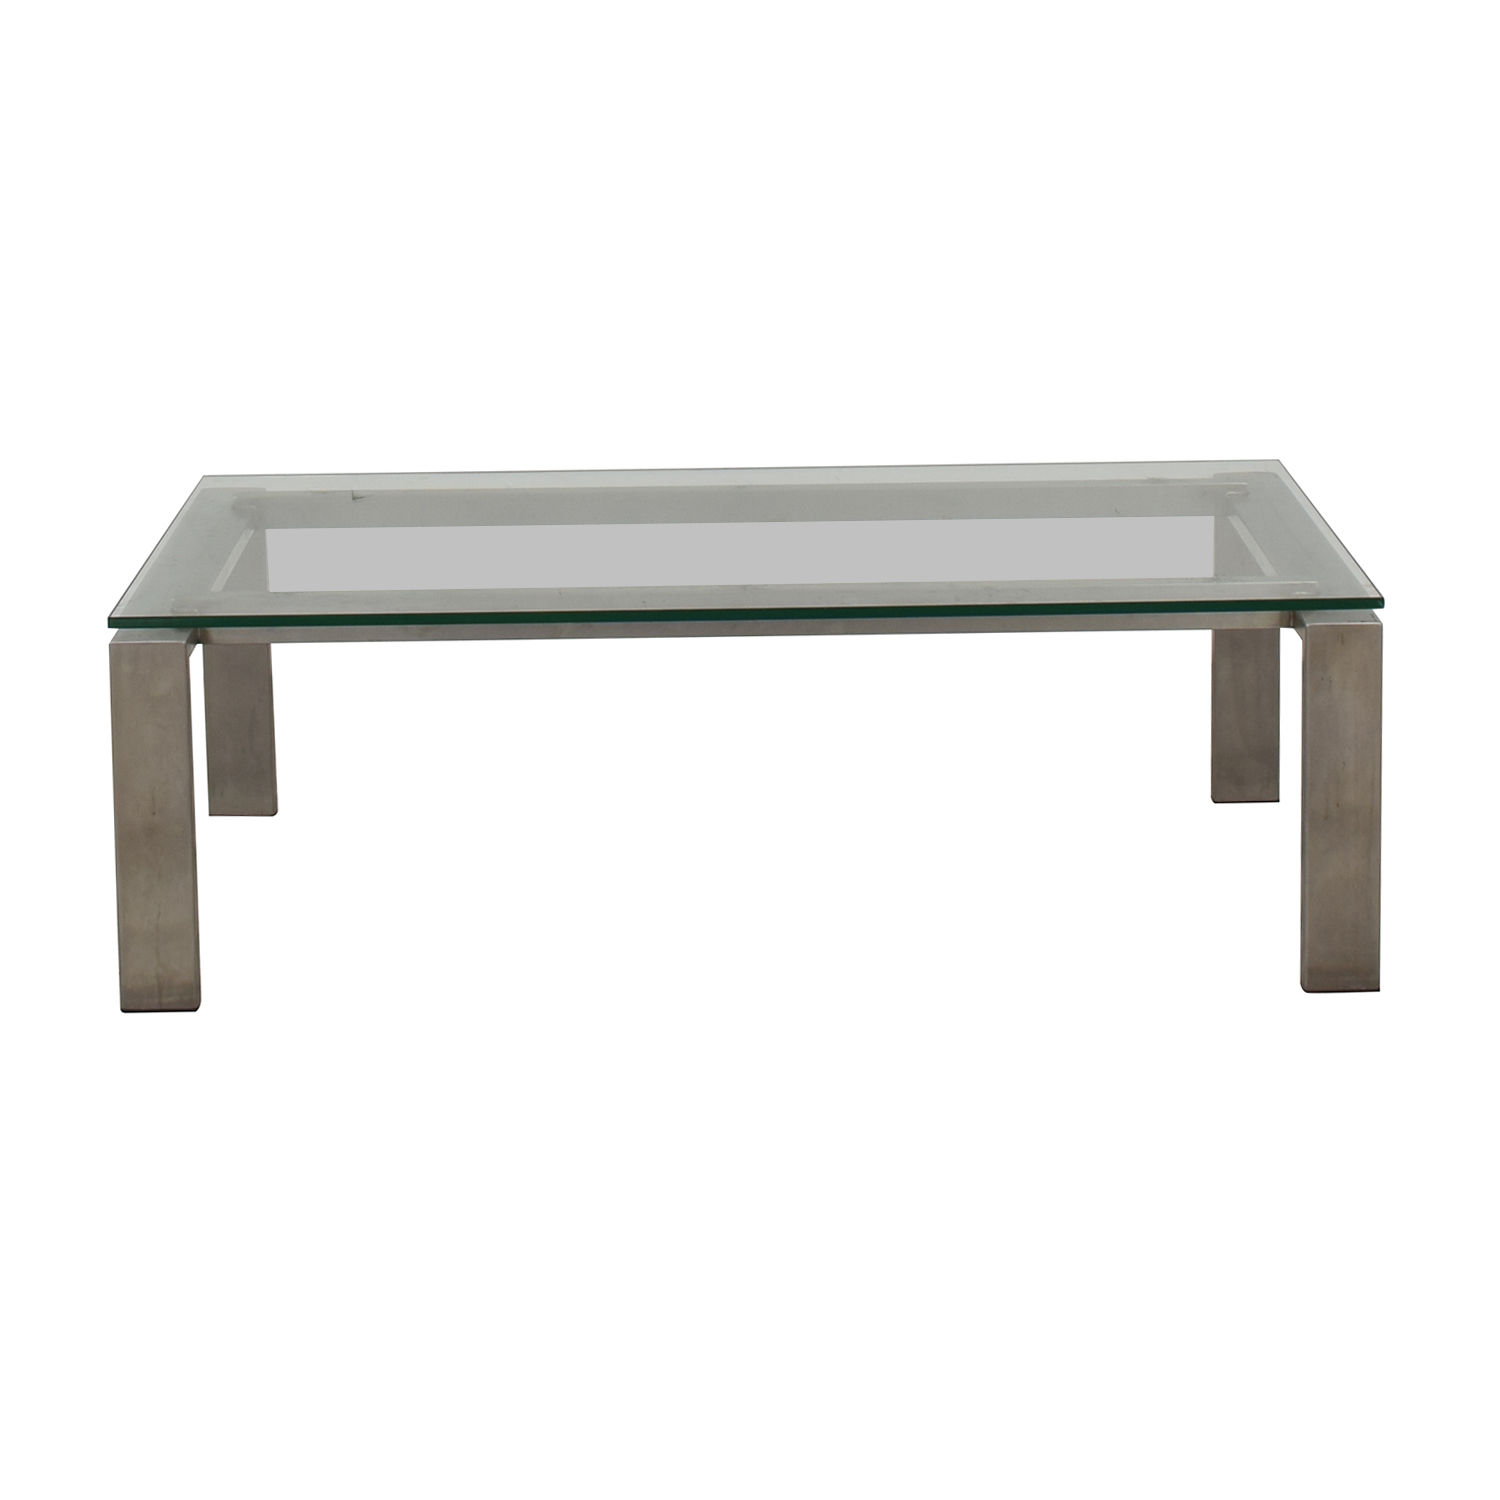 Room & Board Room & Board Glass Coffee Table silver